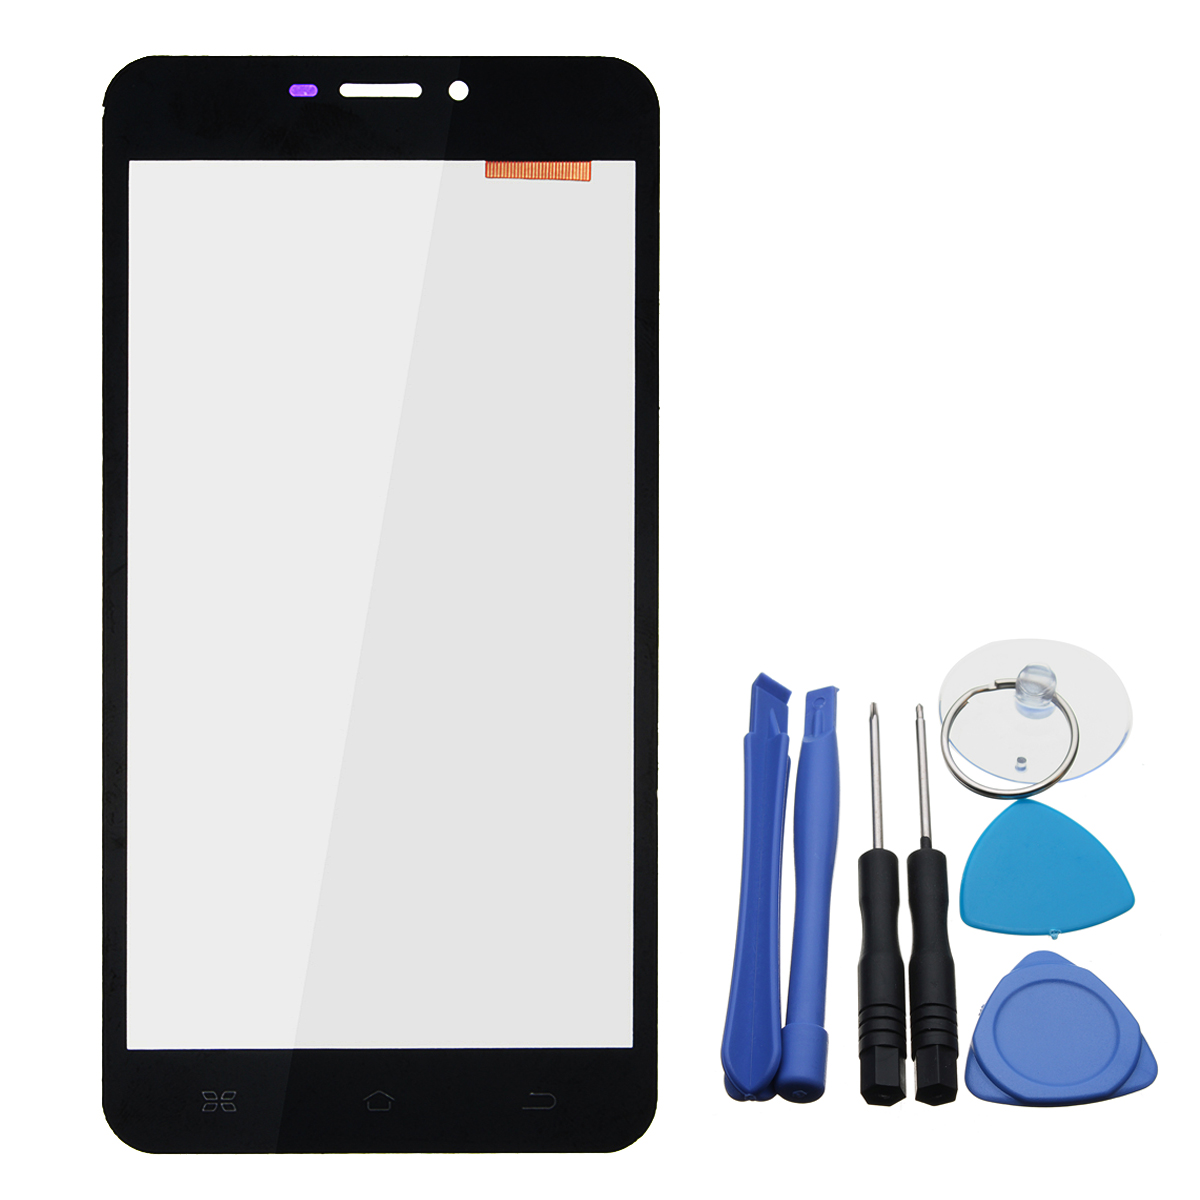 6 inch Digital Display Screen Mobile Phone Touchs HD Screen Assembly Glass Panel Replacement Parts for Maxwest Nitro Phone